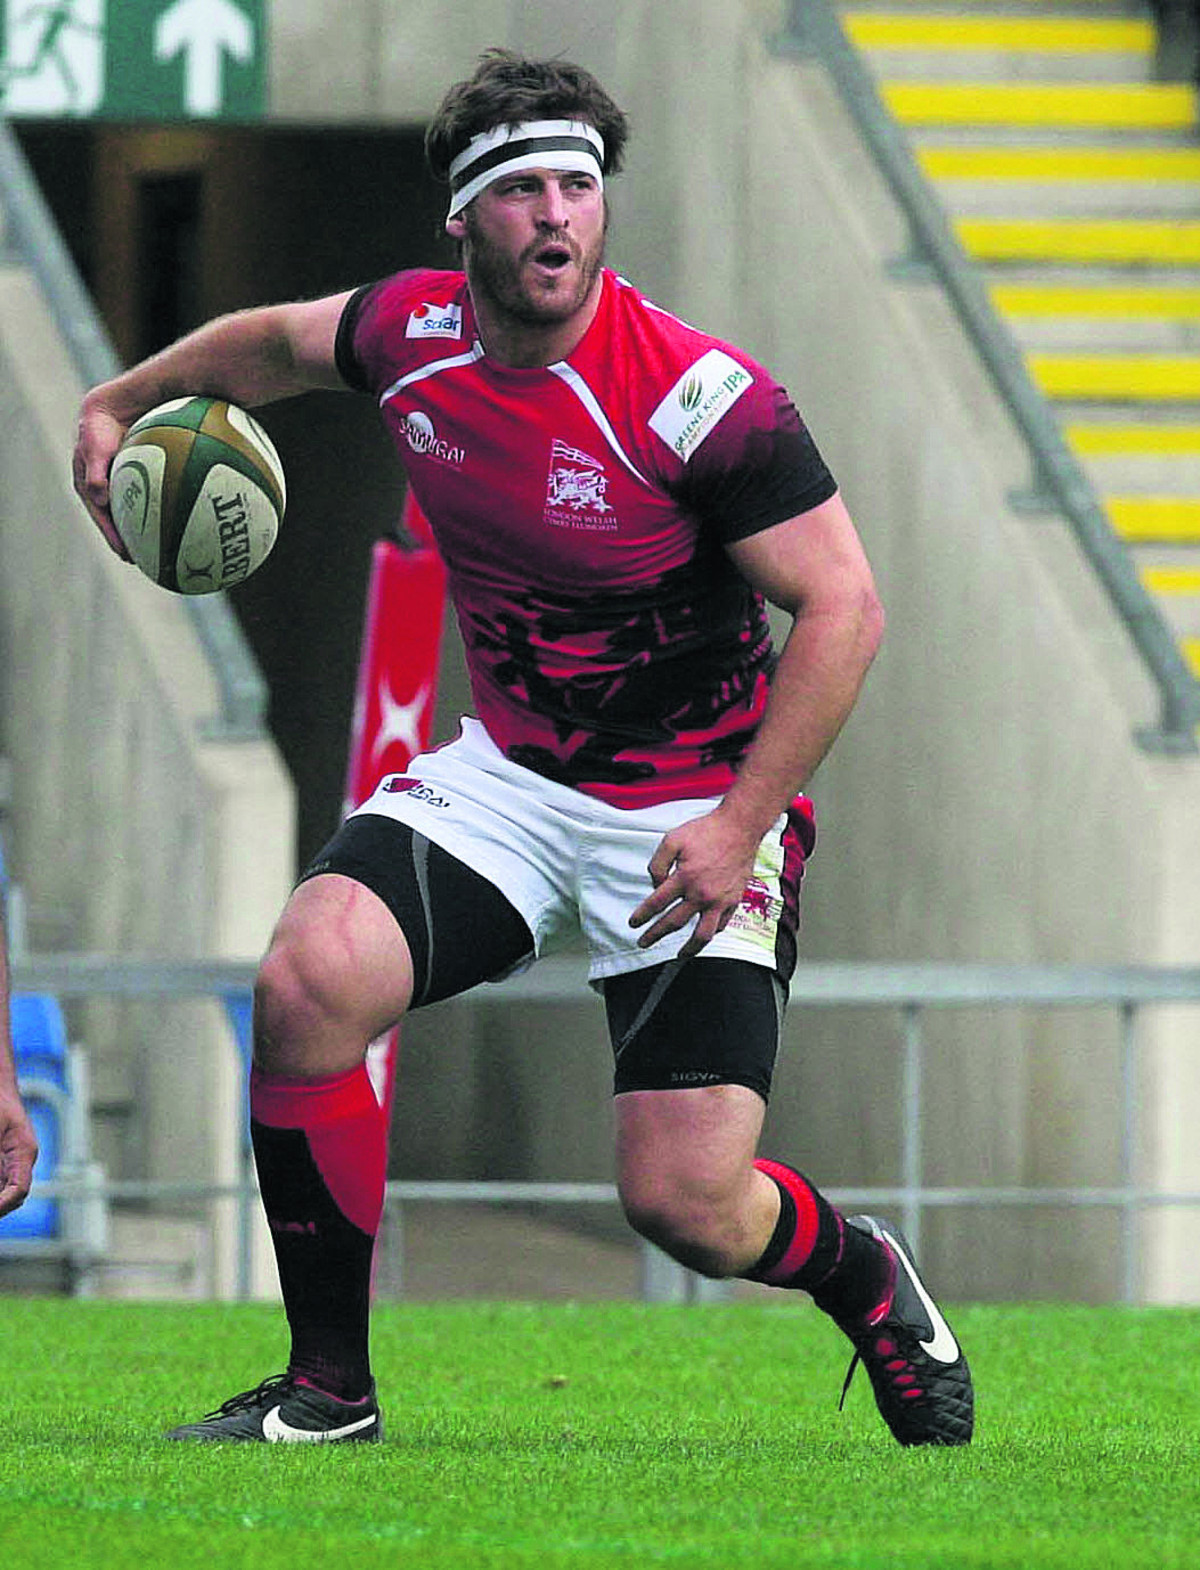 London Welsh flanker Mike Denbee has joined Henley on loan